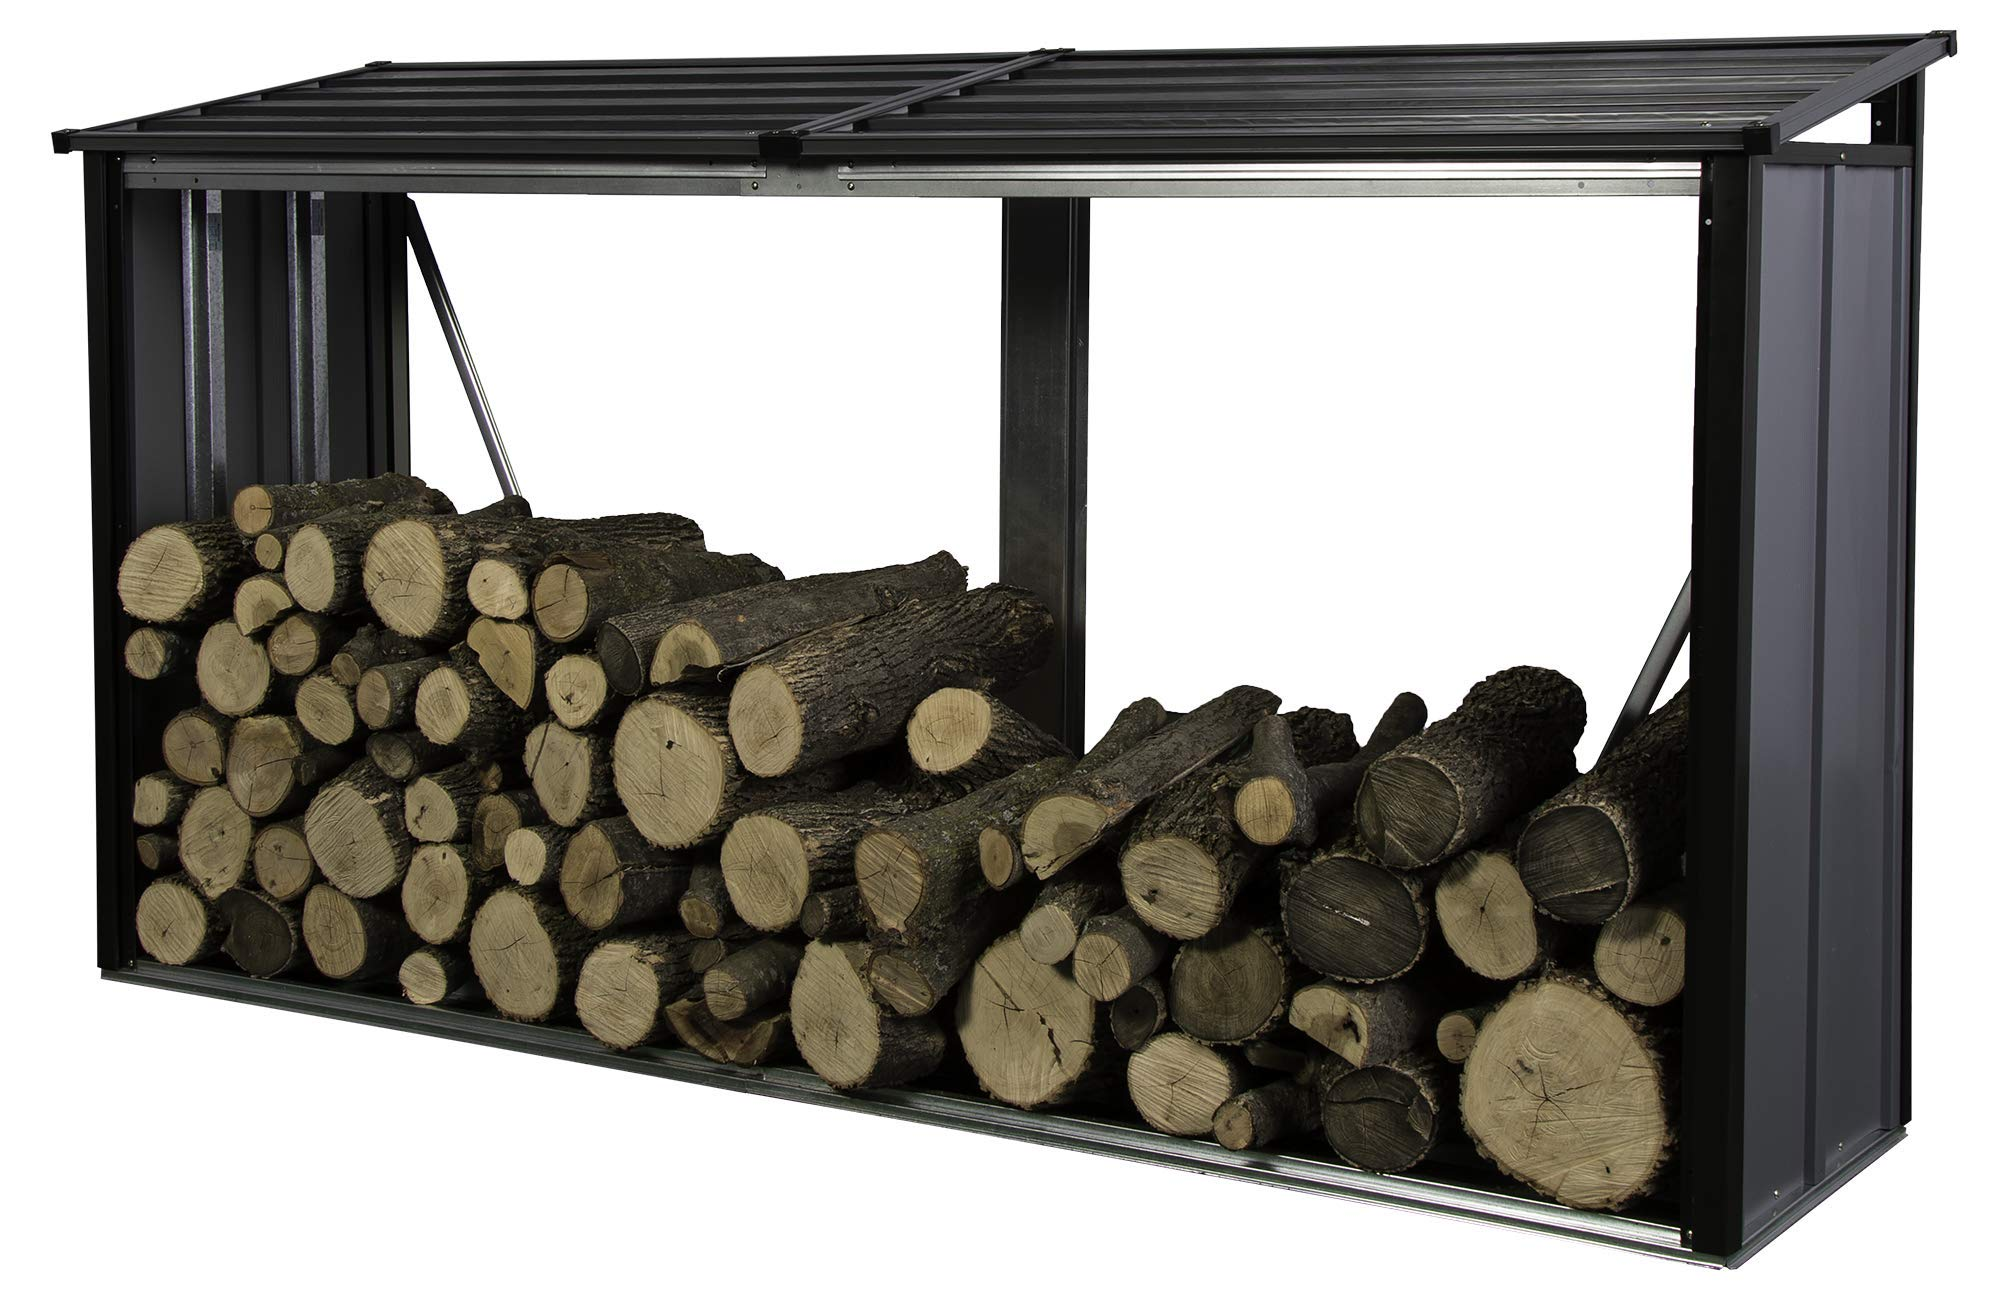 Arrow Compact Galvanized Steel Metal Firewood Rack, Anthracite by Arrow